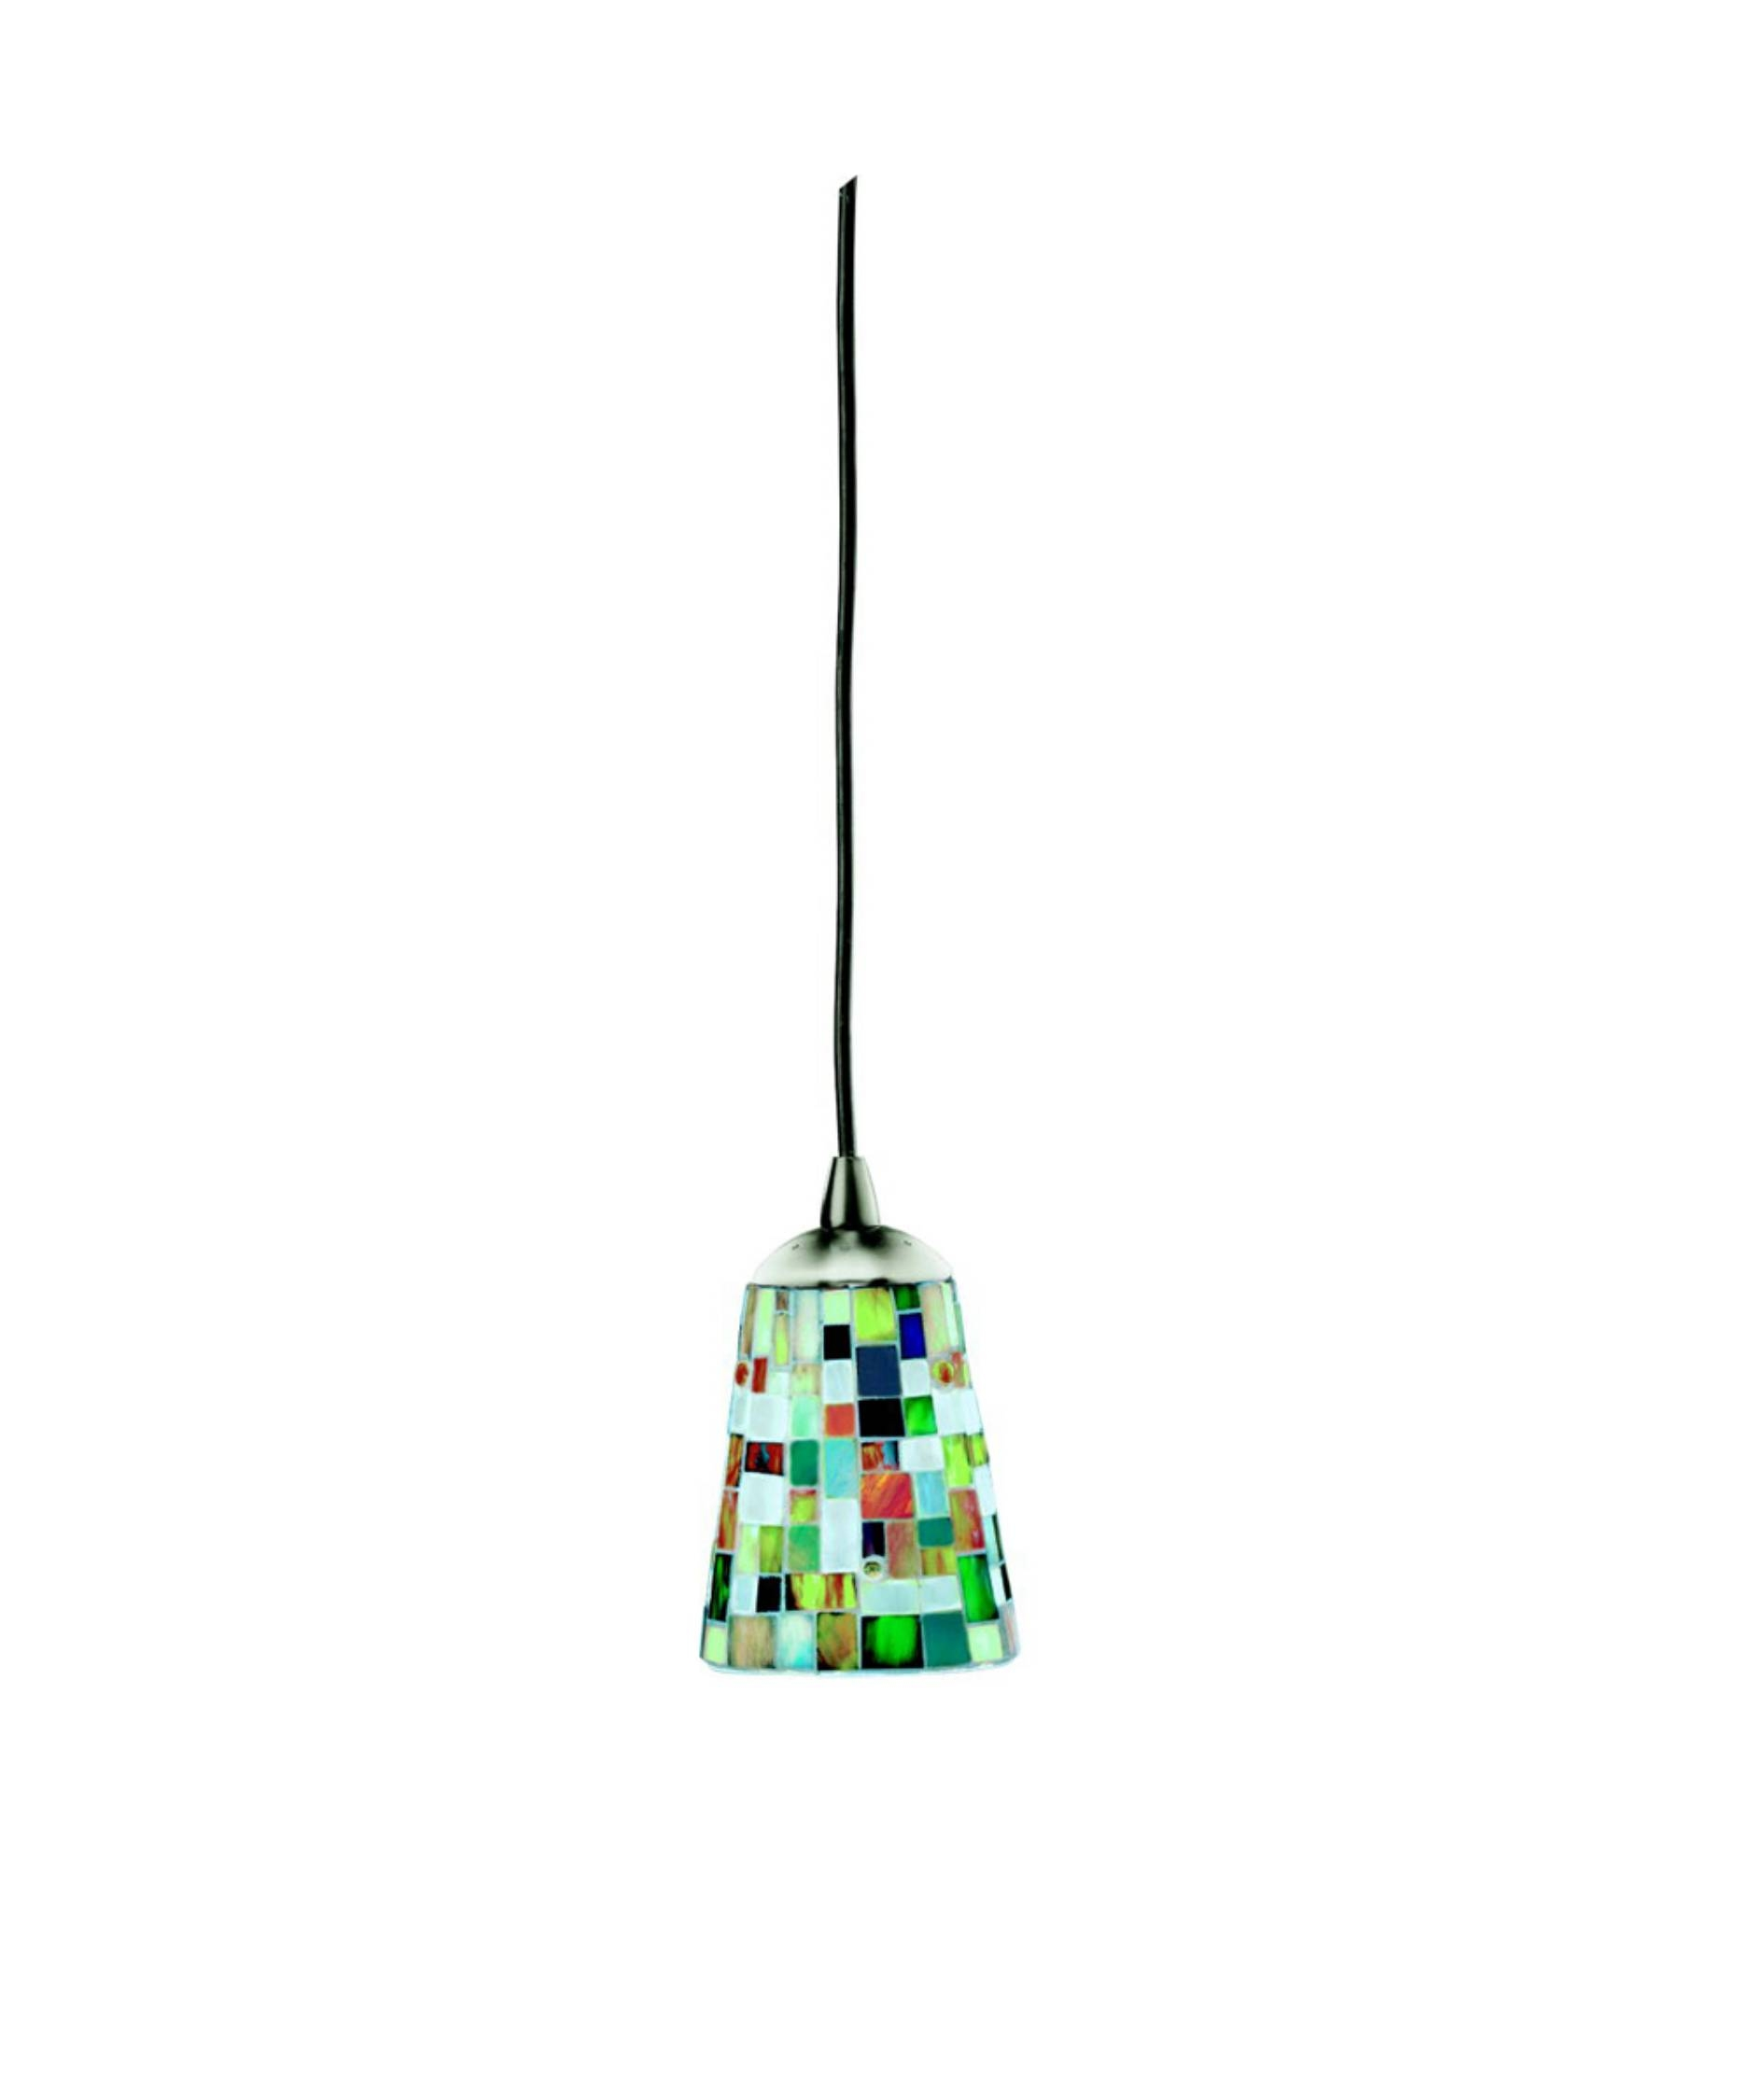 Best Stained Glass Pendant Light 82 For Mini Pendant Light intended for Stained Glass Mini Pendant Lights (Image 3 of 15)